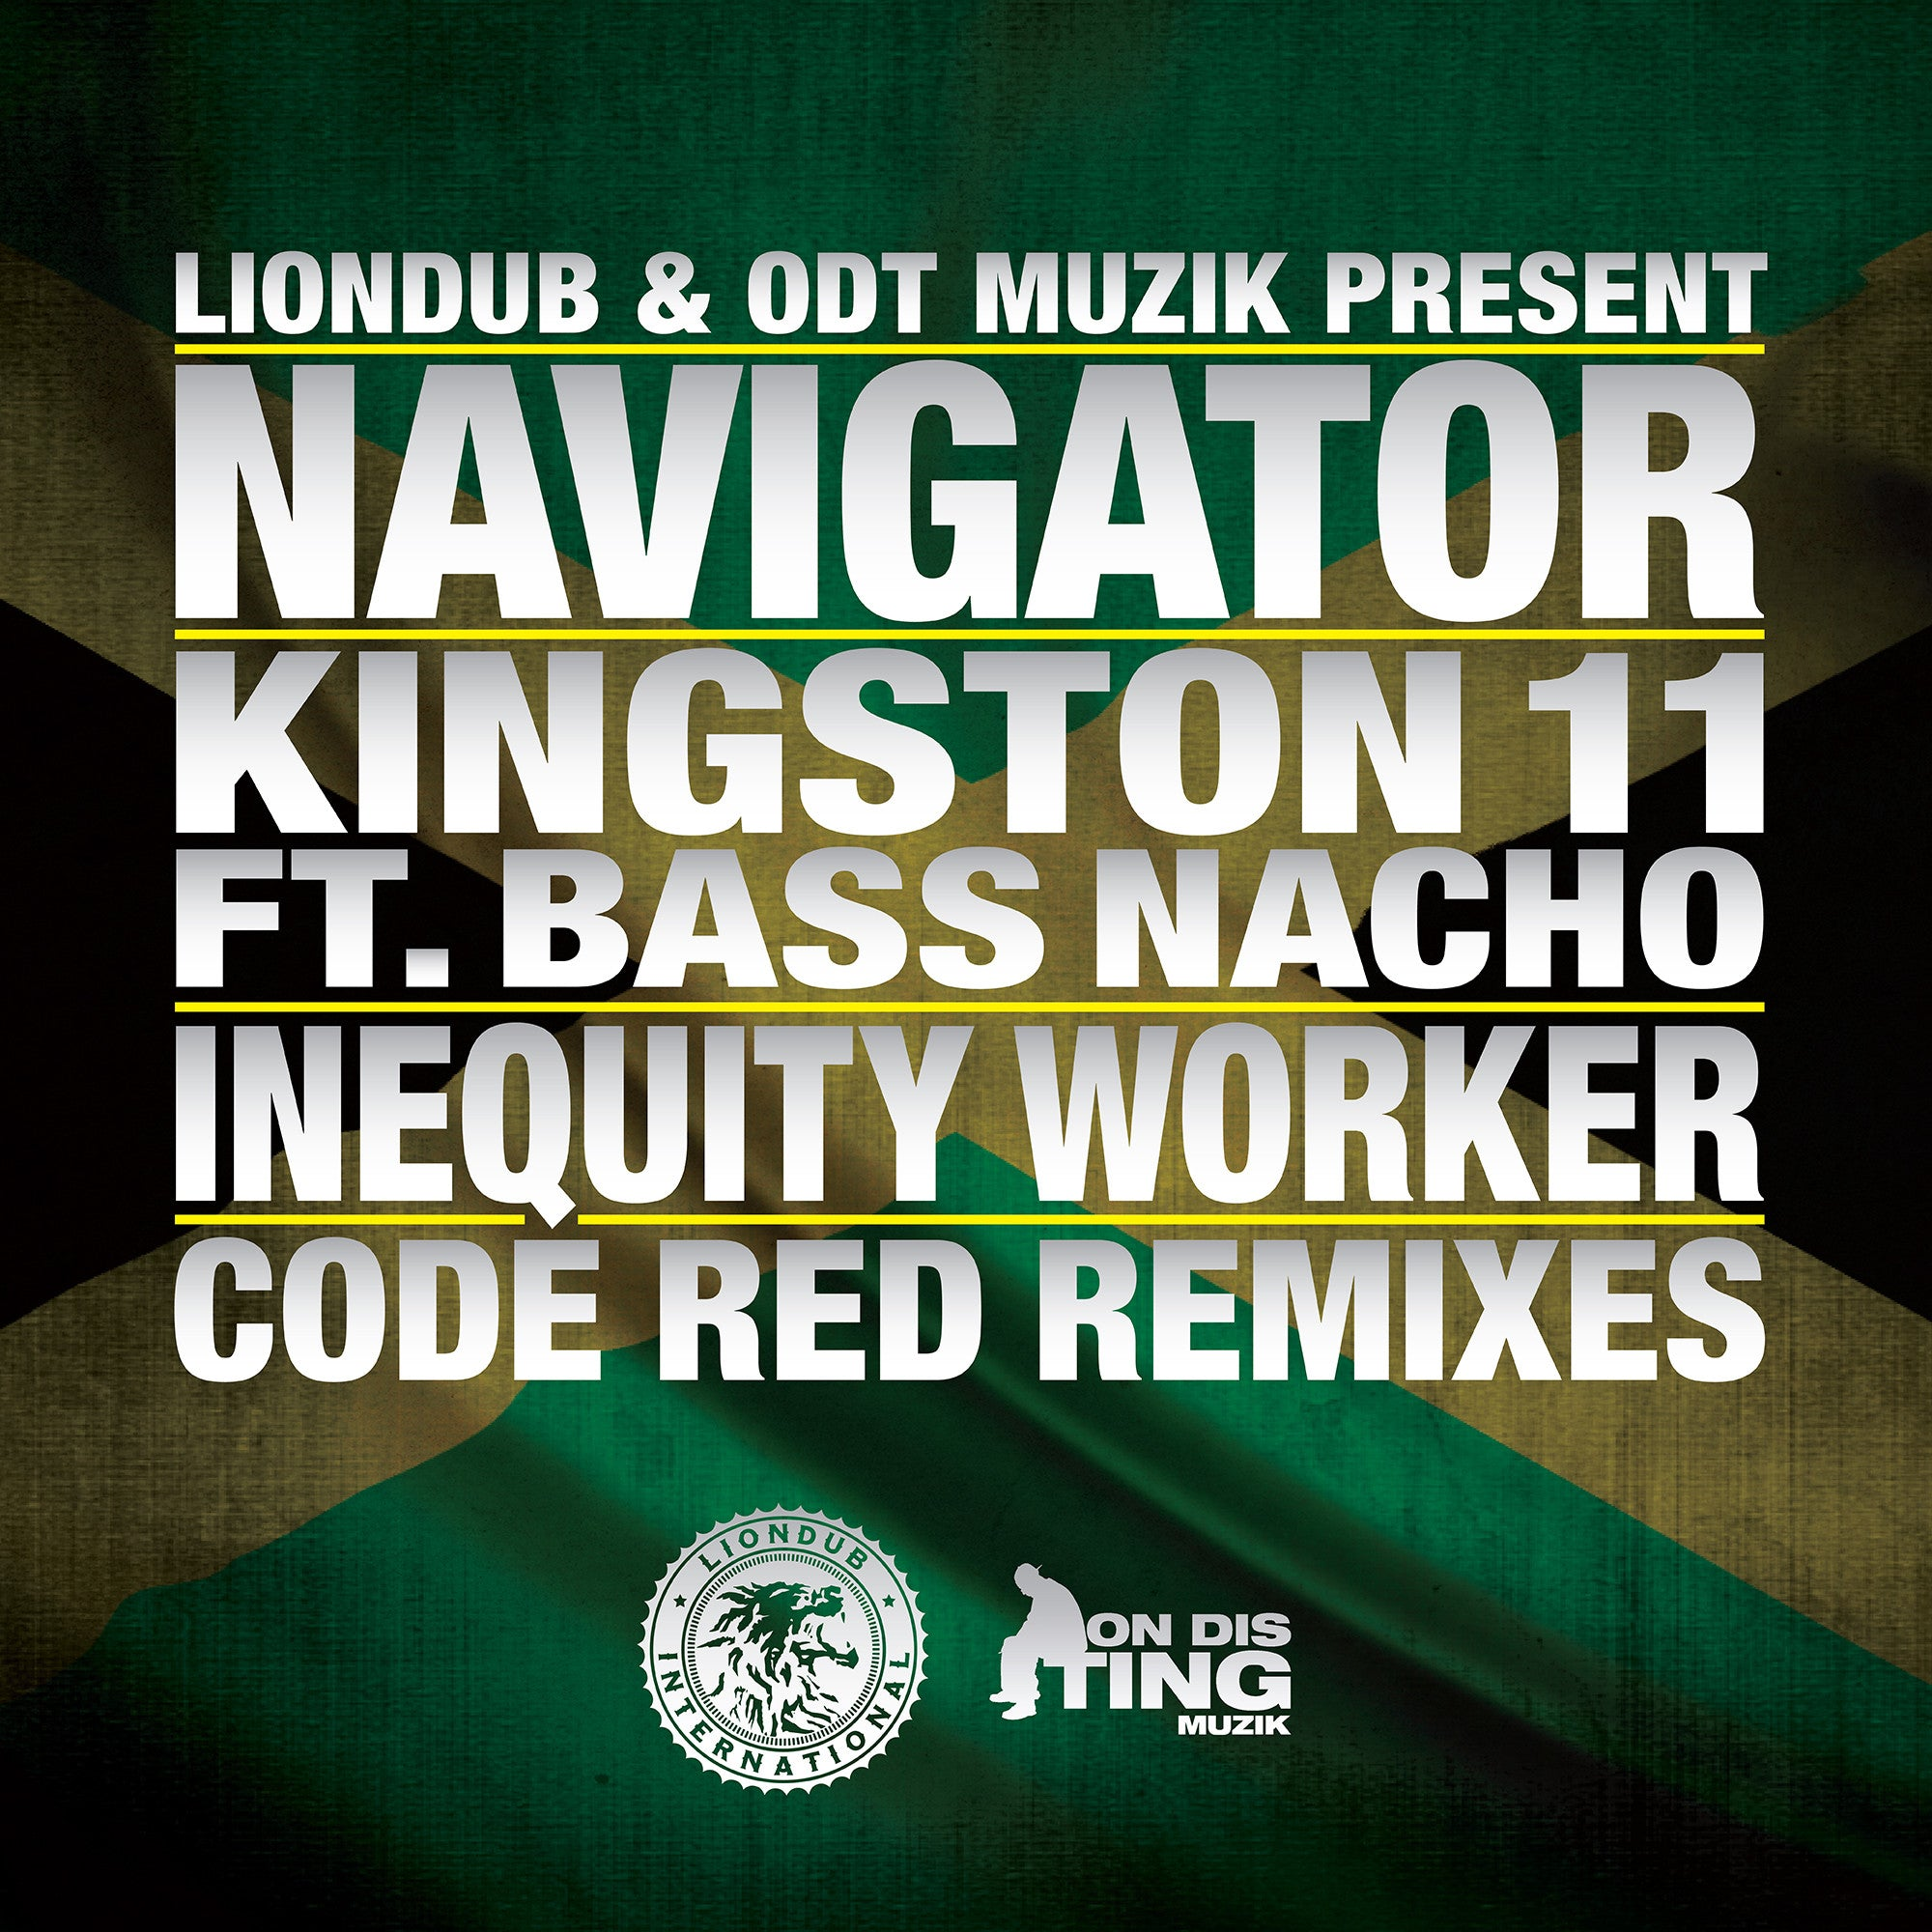 Navigator - Kingston 11 Ft. Bass Nacho / Inequity Worker [Code Red Remixes] - Unearthed Sounds